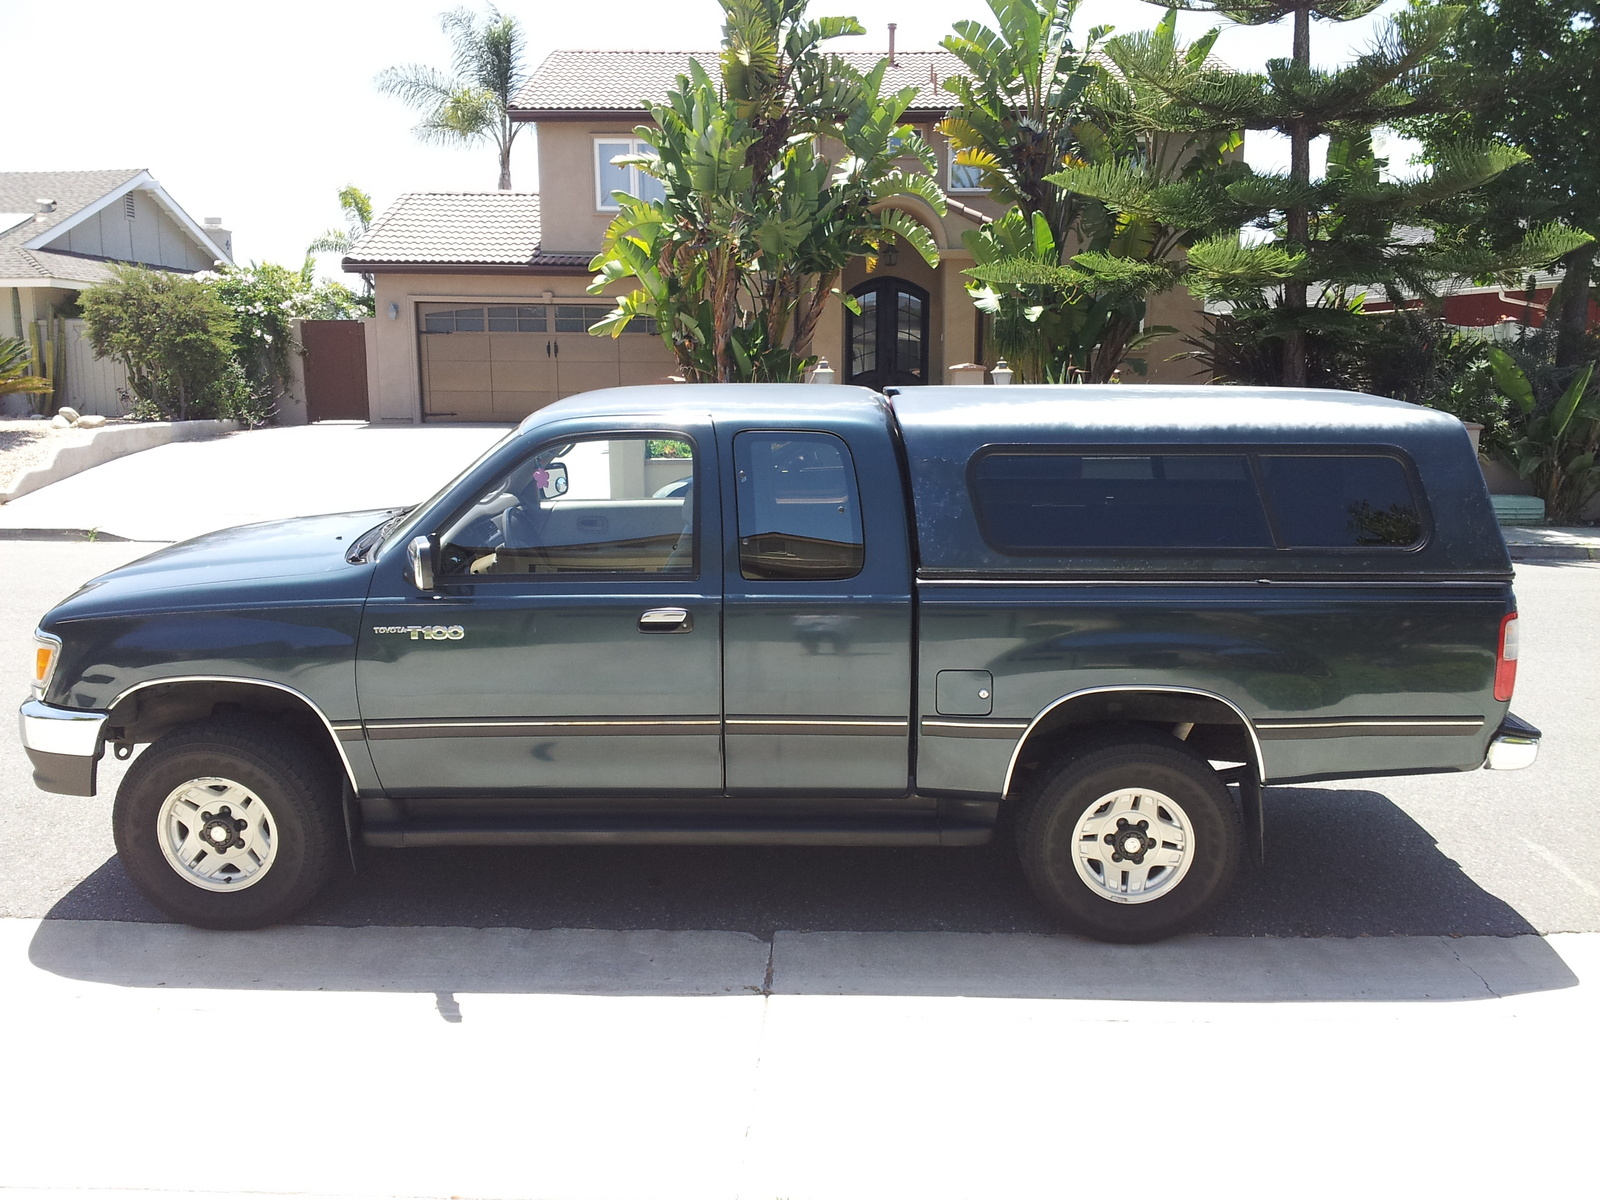 1995 Chevy S10 Extended Cab 1995 toyota t100 extended cab